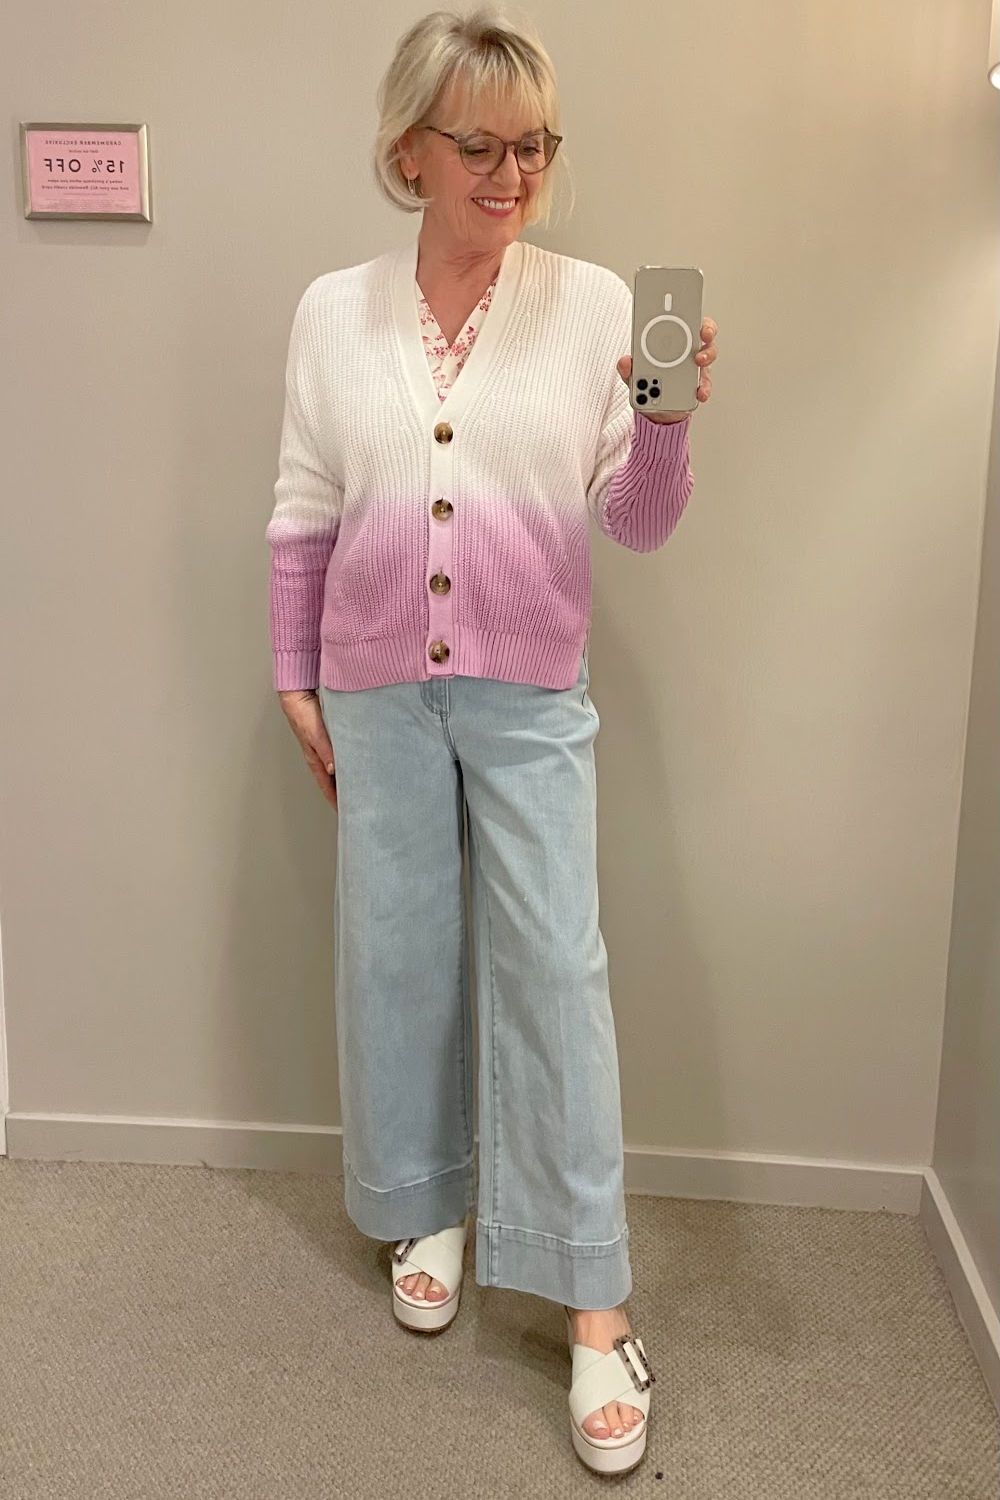 woman wearing varigated cardigan and wide leg jeans in dressing room mirror